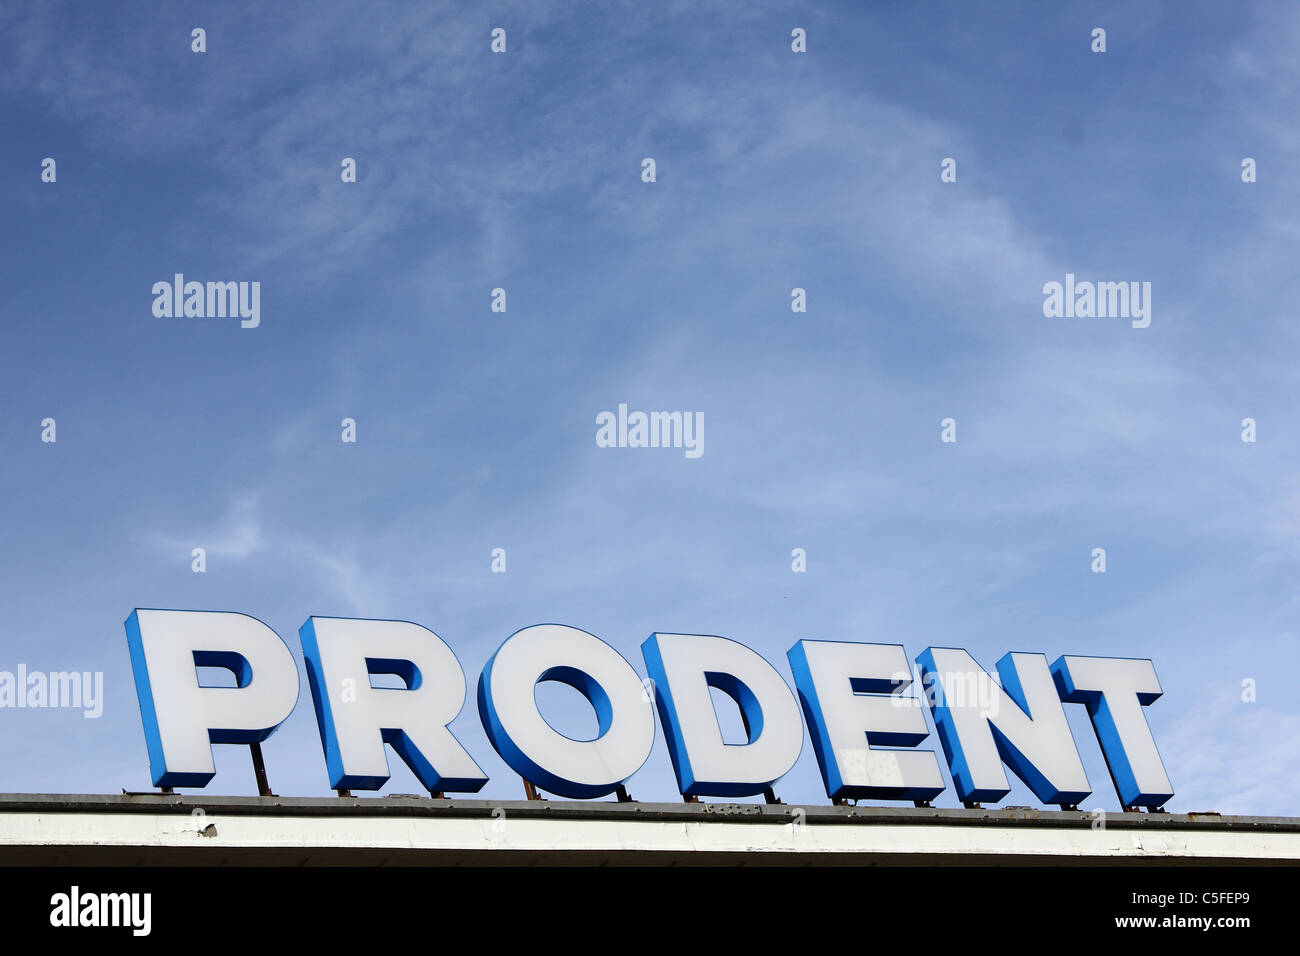 Prodent sign on the Prodent factory - Stock Image